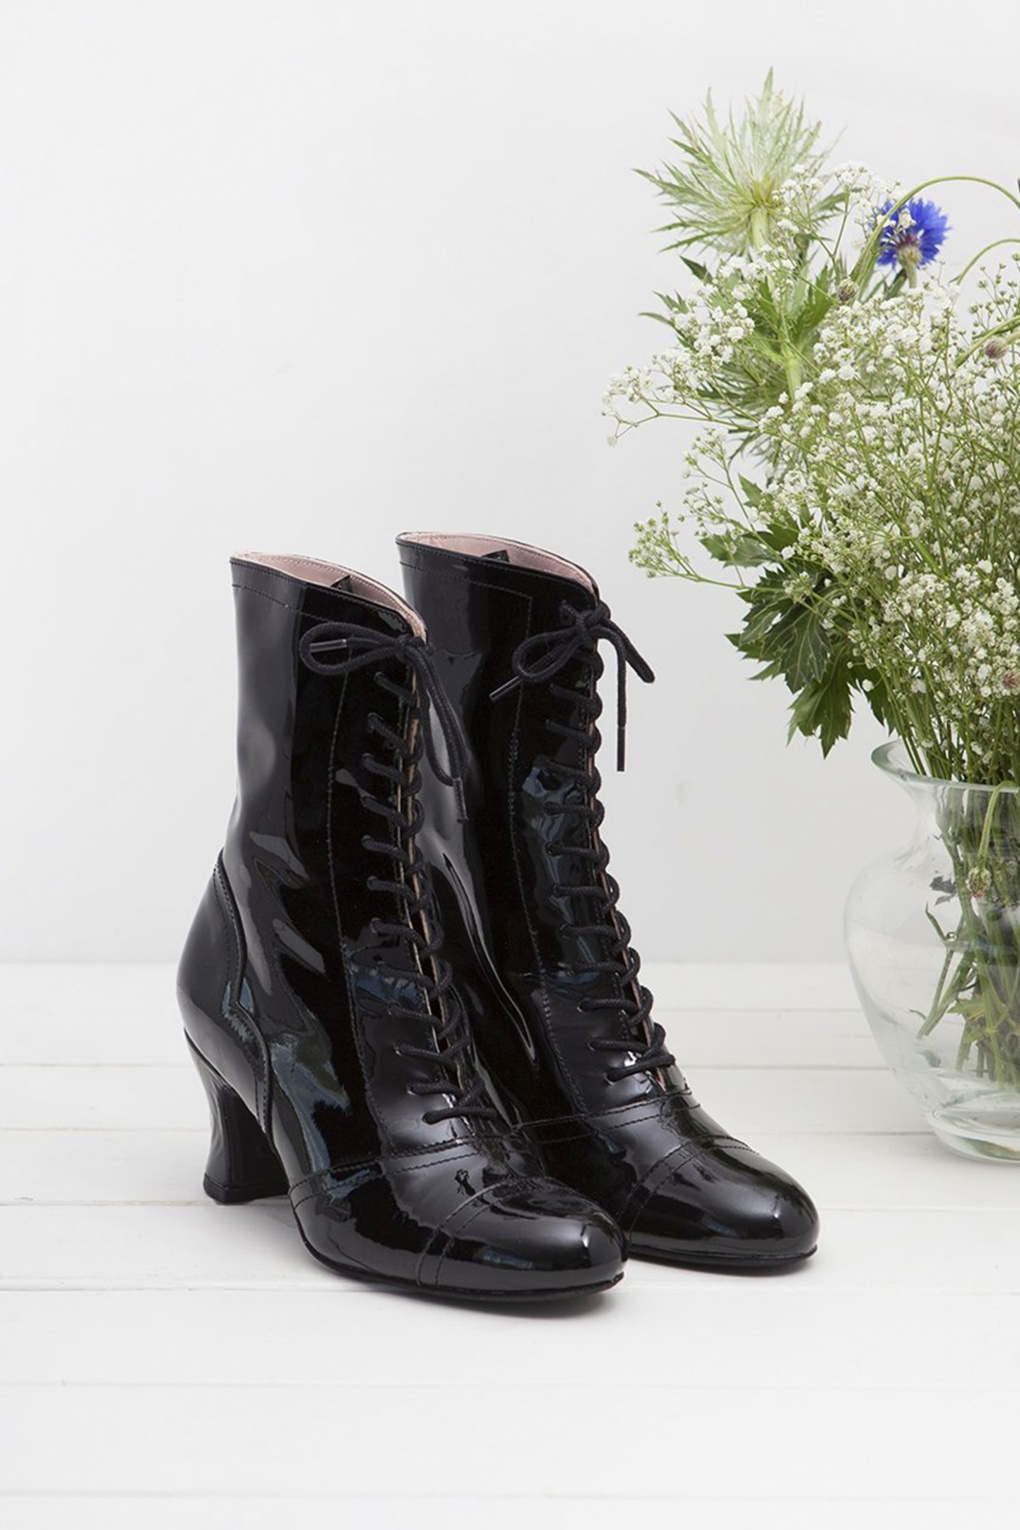 Vintage Style Shoes, Vintage Inspired Shoes 40s Frida Lace Up Booties in Patent Black £178.48 AT vintagedancer.com